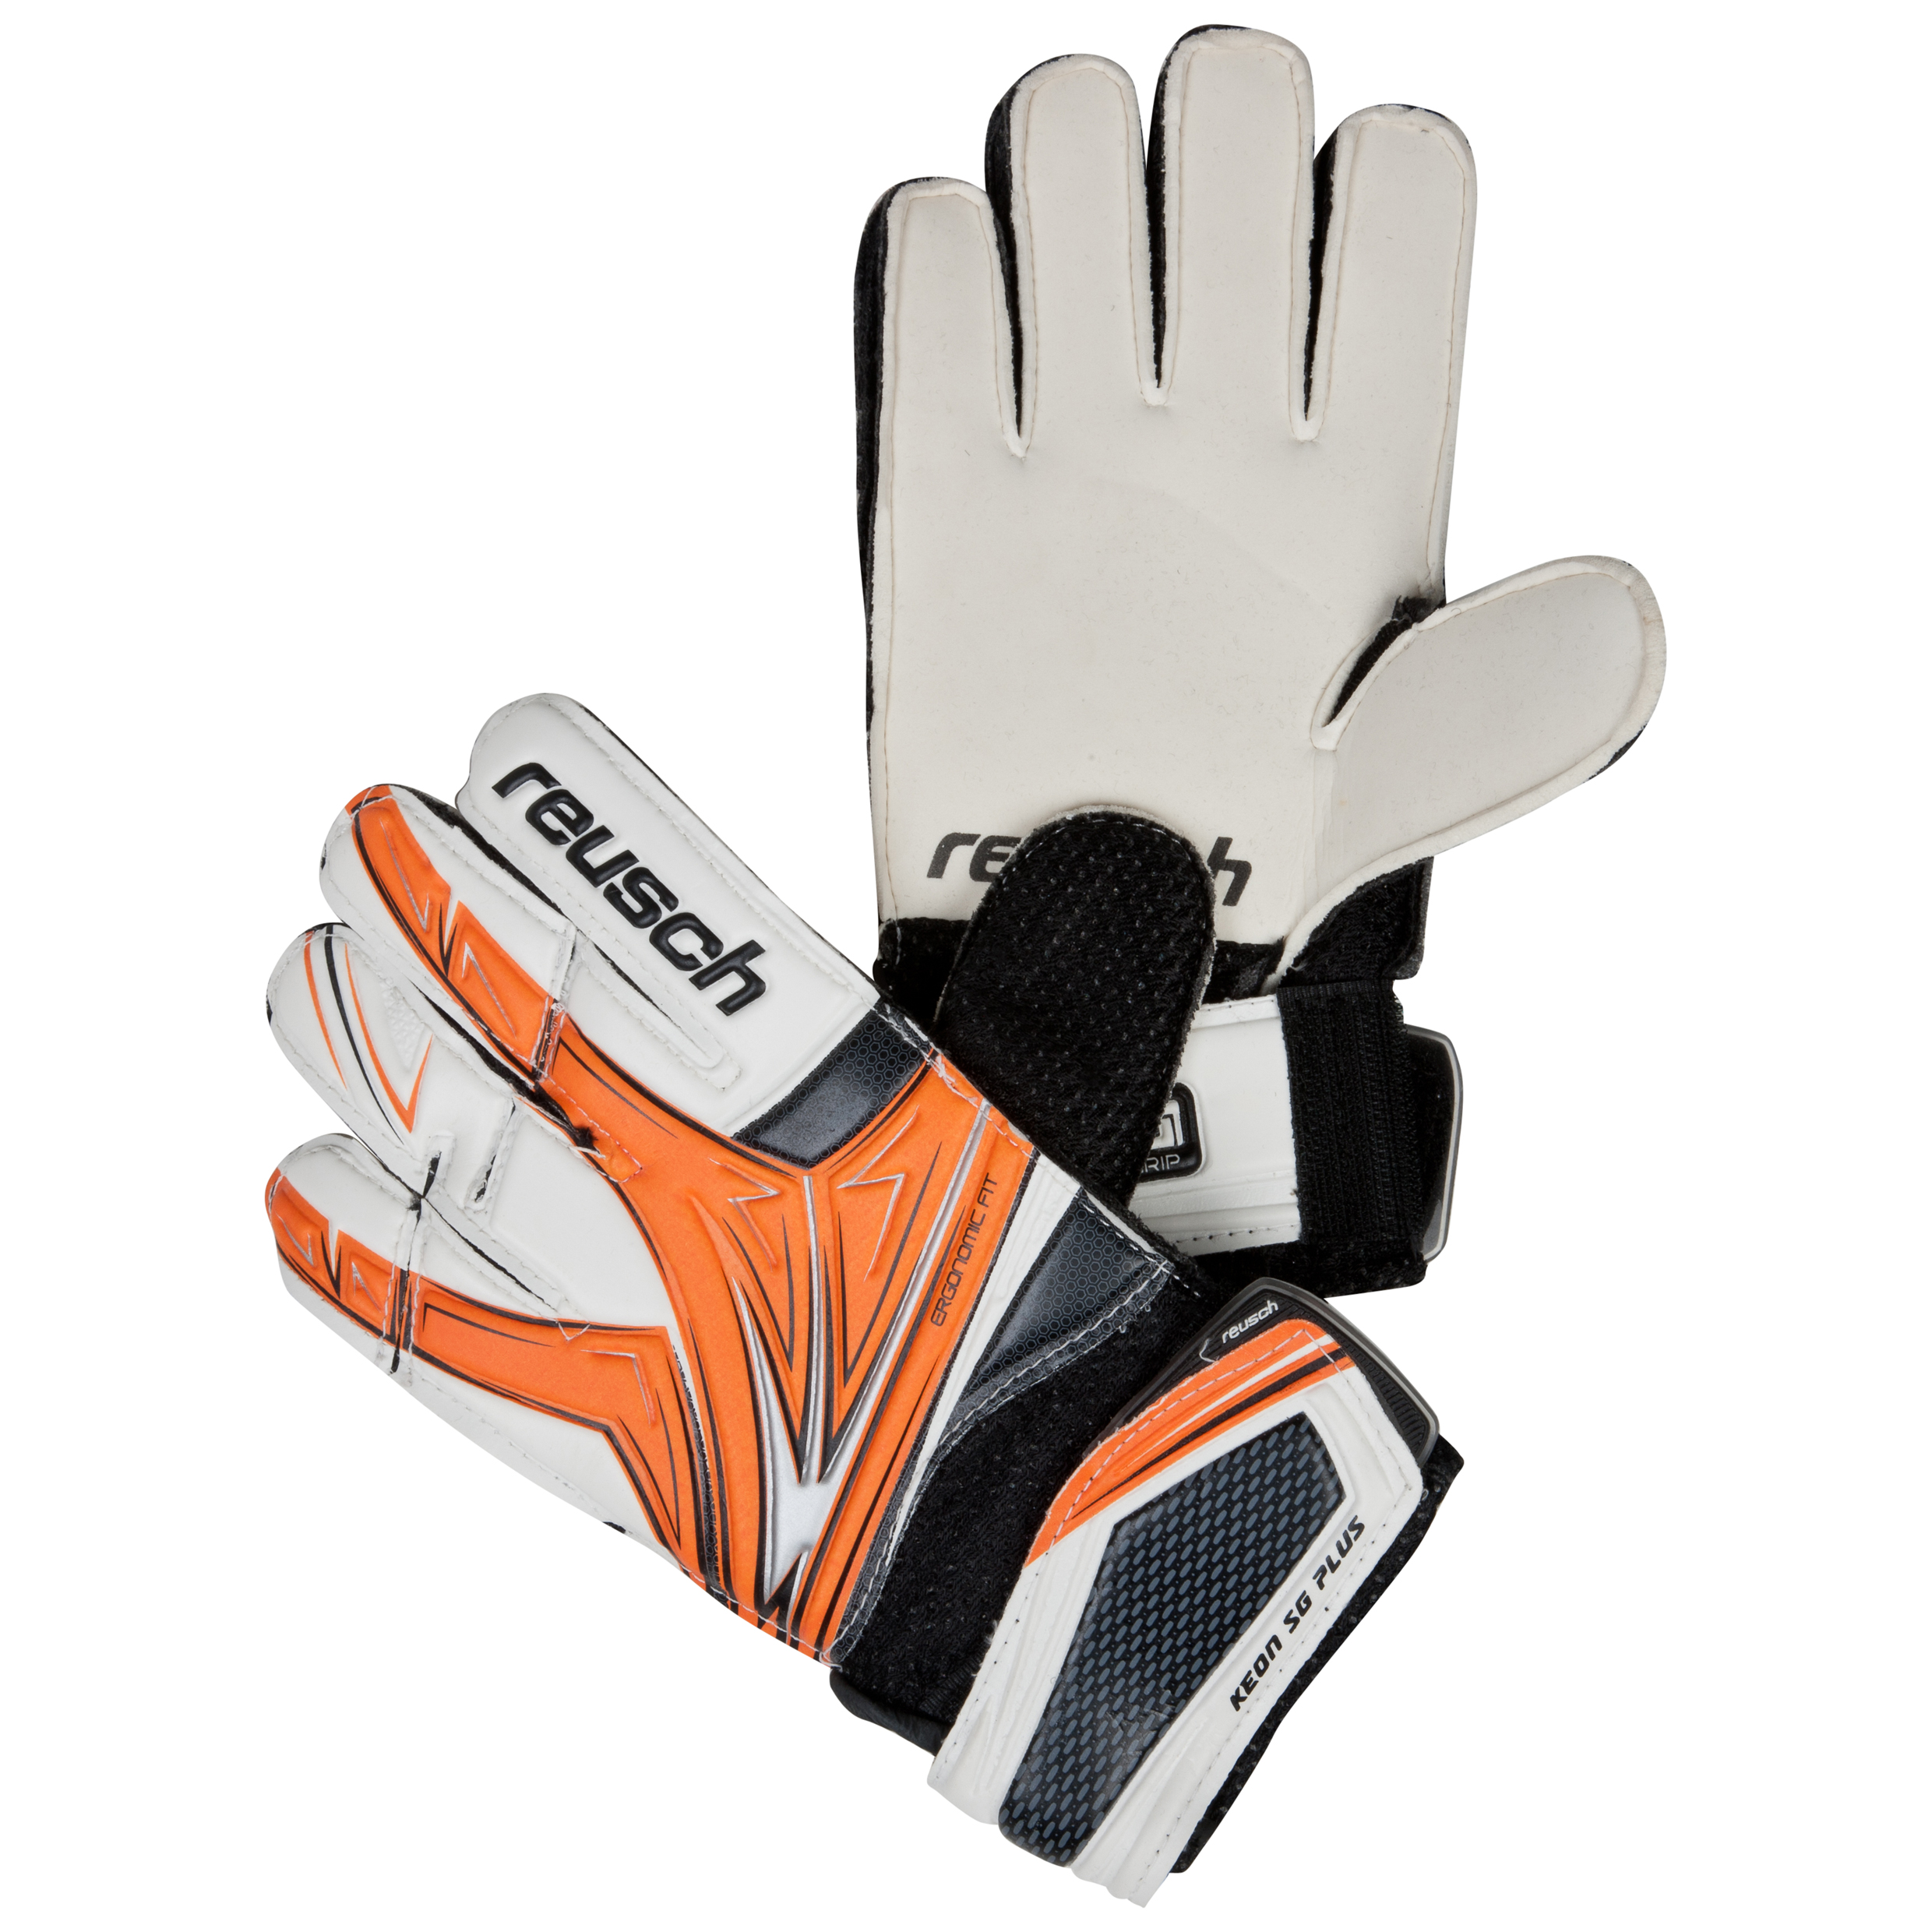 Reusch Keon SG Plus Goalkeeper Gloves - Kids-Orange/Black/White